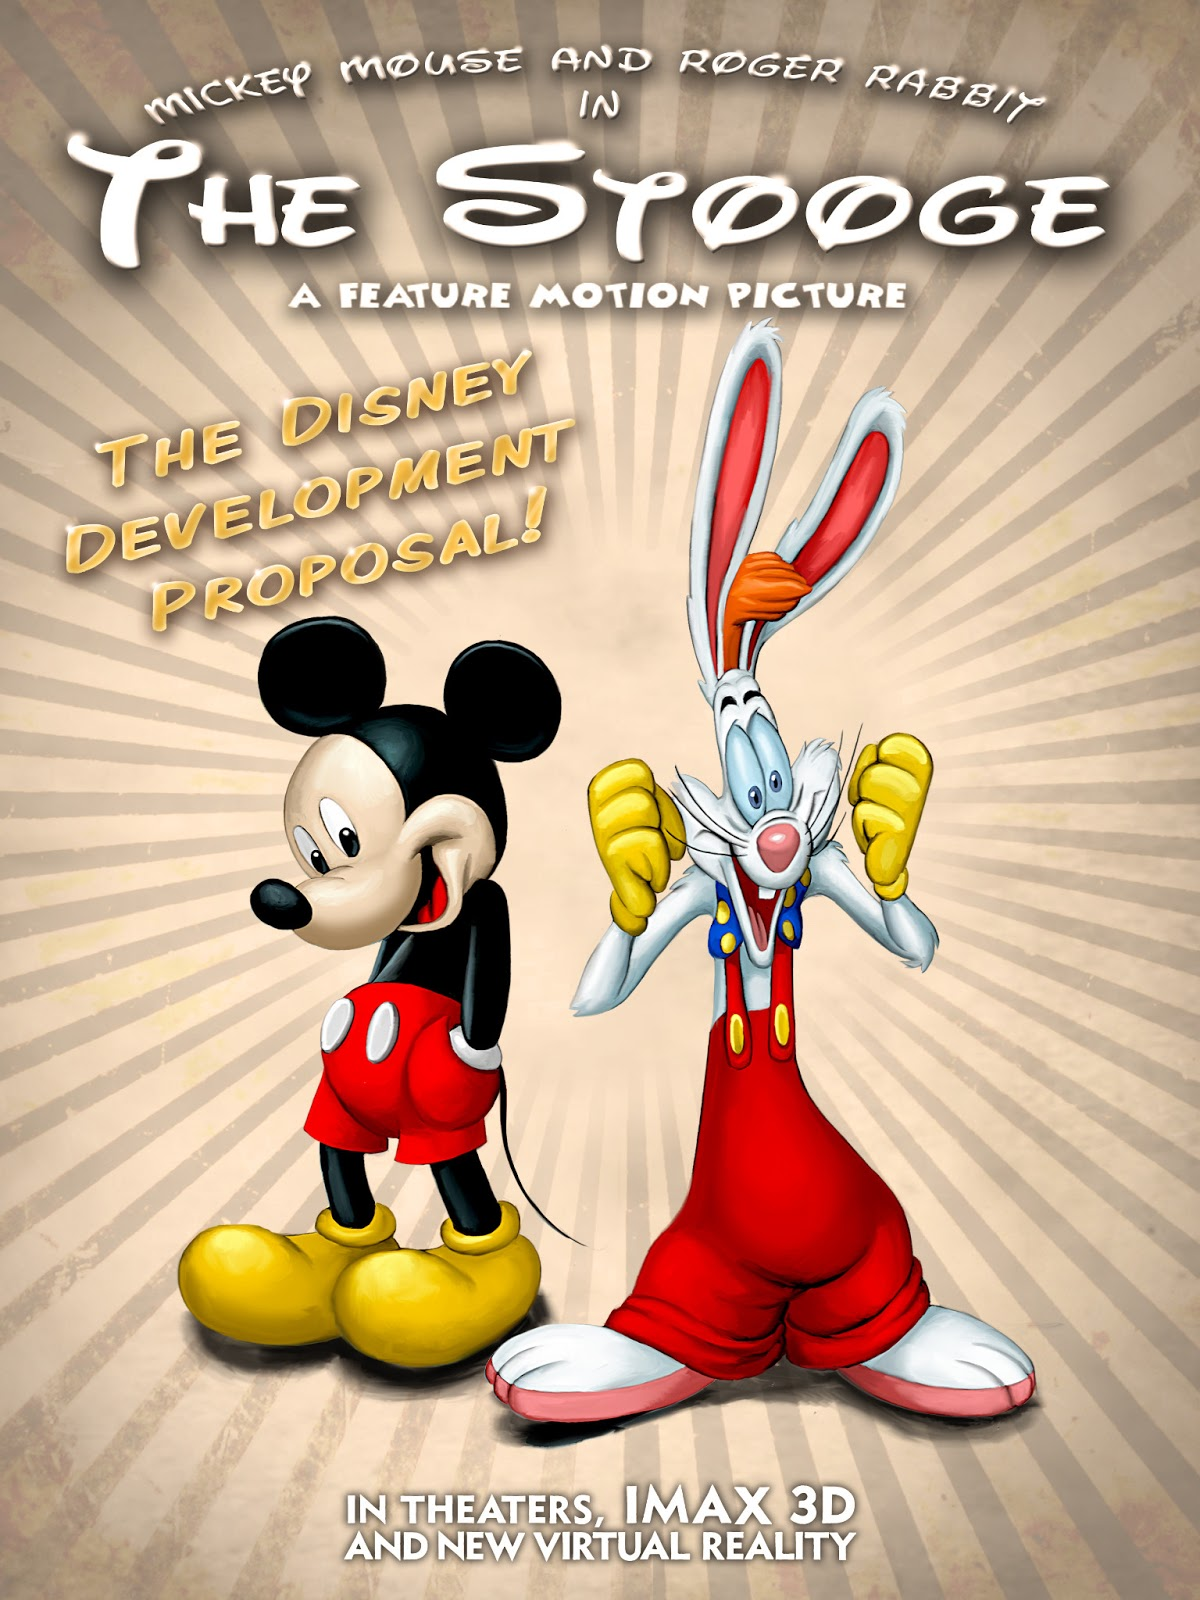 The Stooge Poster mickey mouse roger rabbit